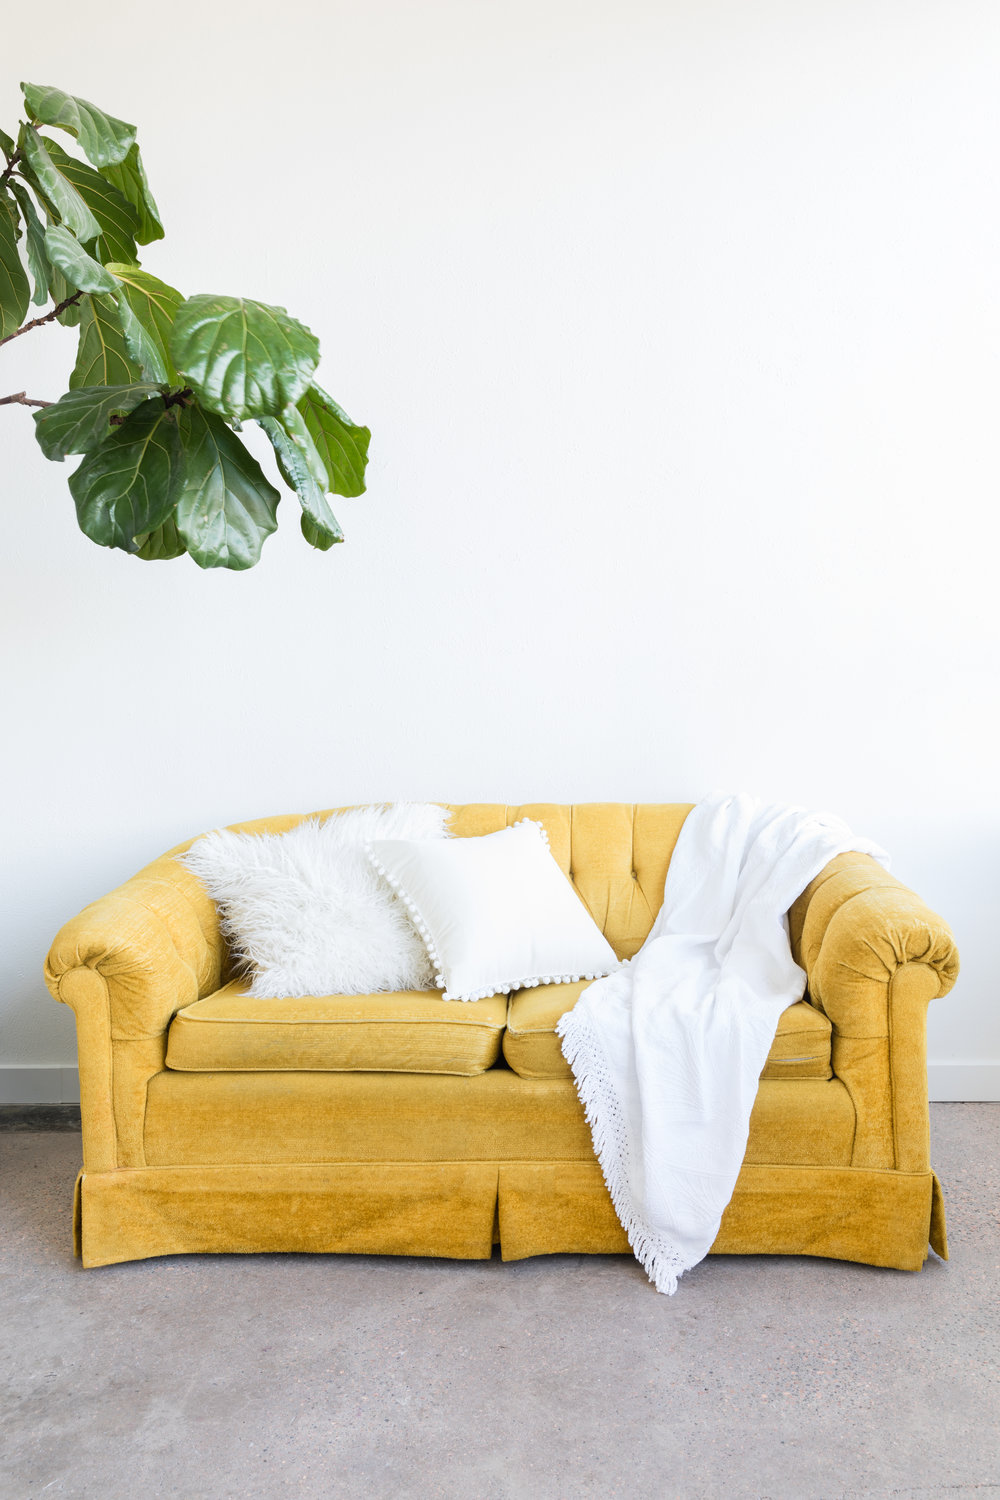 White studio with cement floors, yellow velvet couch, and fiddle leaf fig tree.